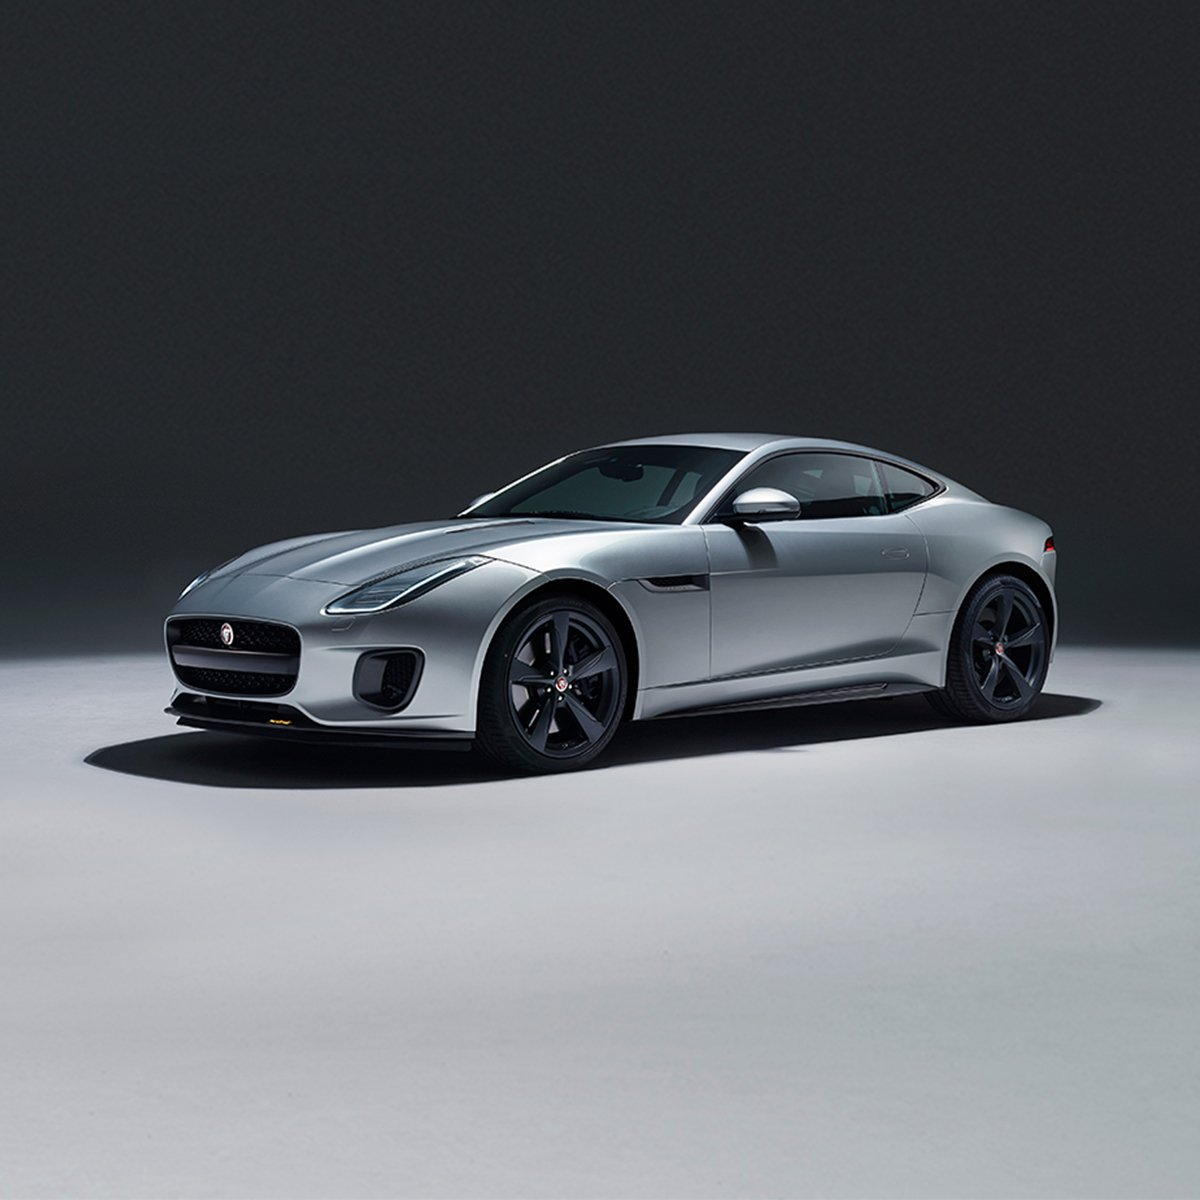 Every Generation Has Its Icon This Is Ftype 400sport Learn More Http Jagua Rs U3xtff Pic Twitter Wx910wdkyv